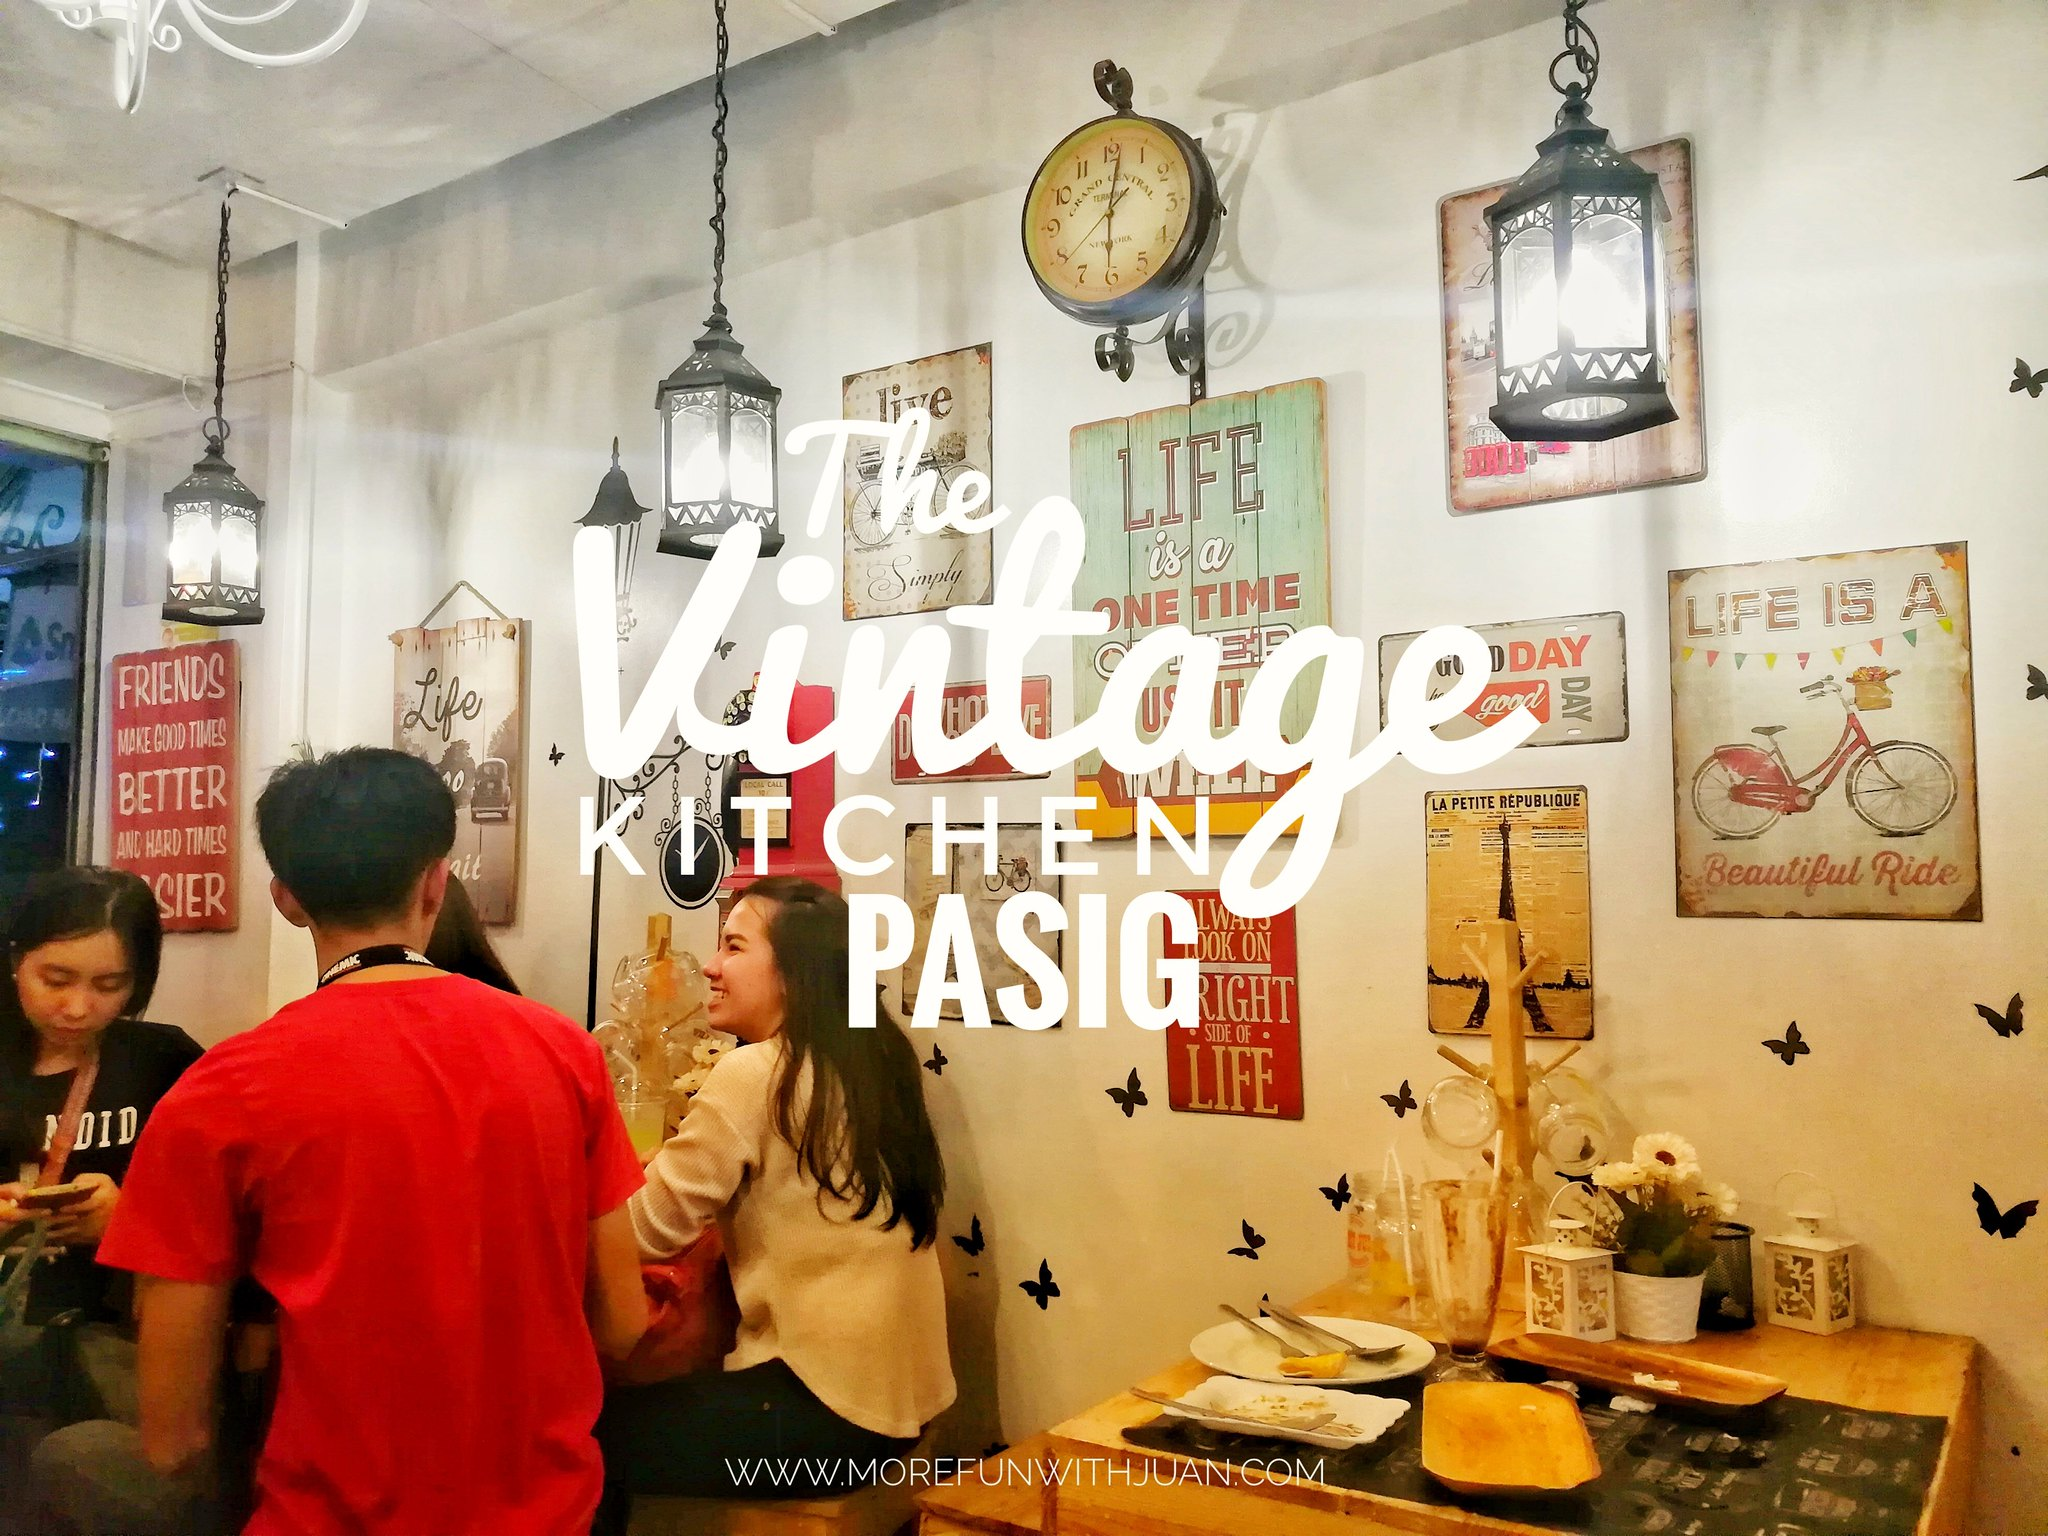 The Vintage Kitchen, PASIG